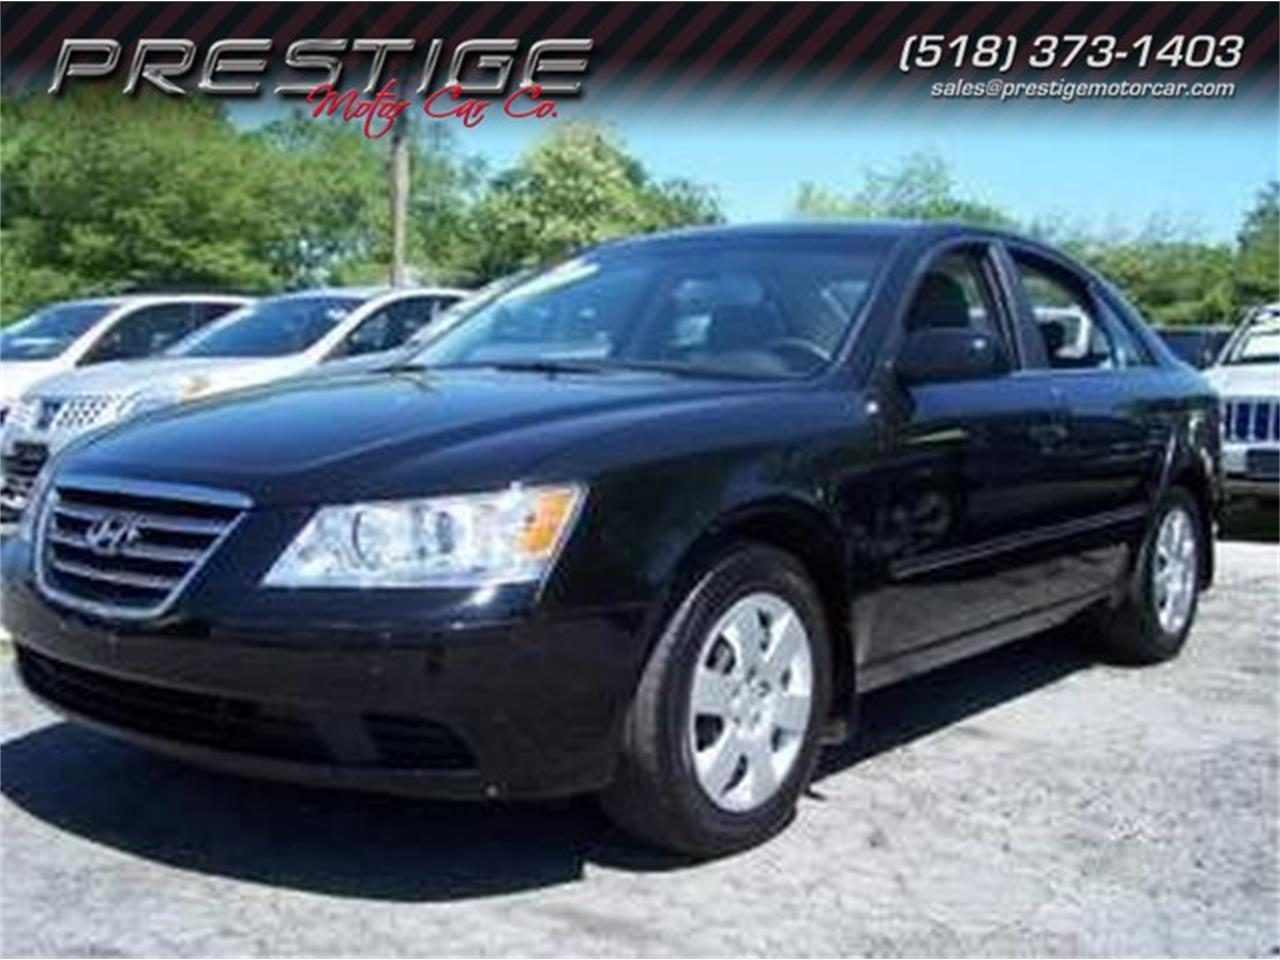 Large Picture of '09 Hyundai Sonata located in Clifton Park New York Offered by Prestige Motor Car Co. - MAZK